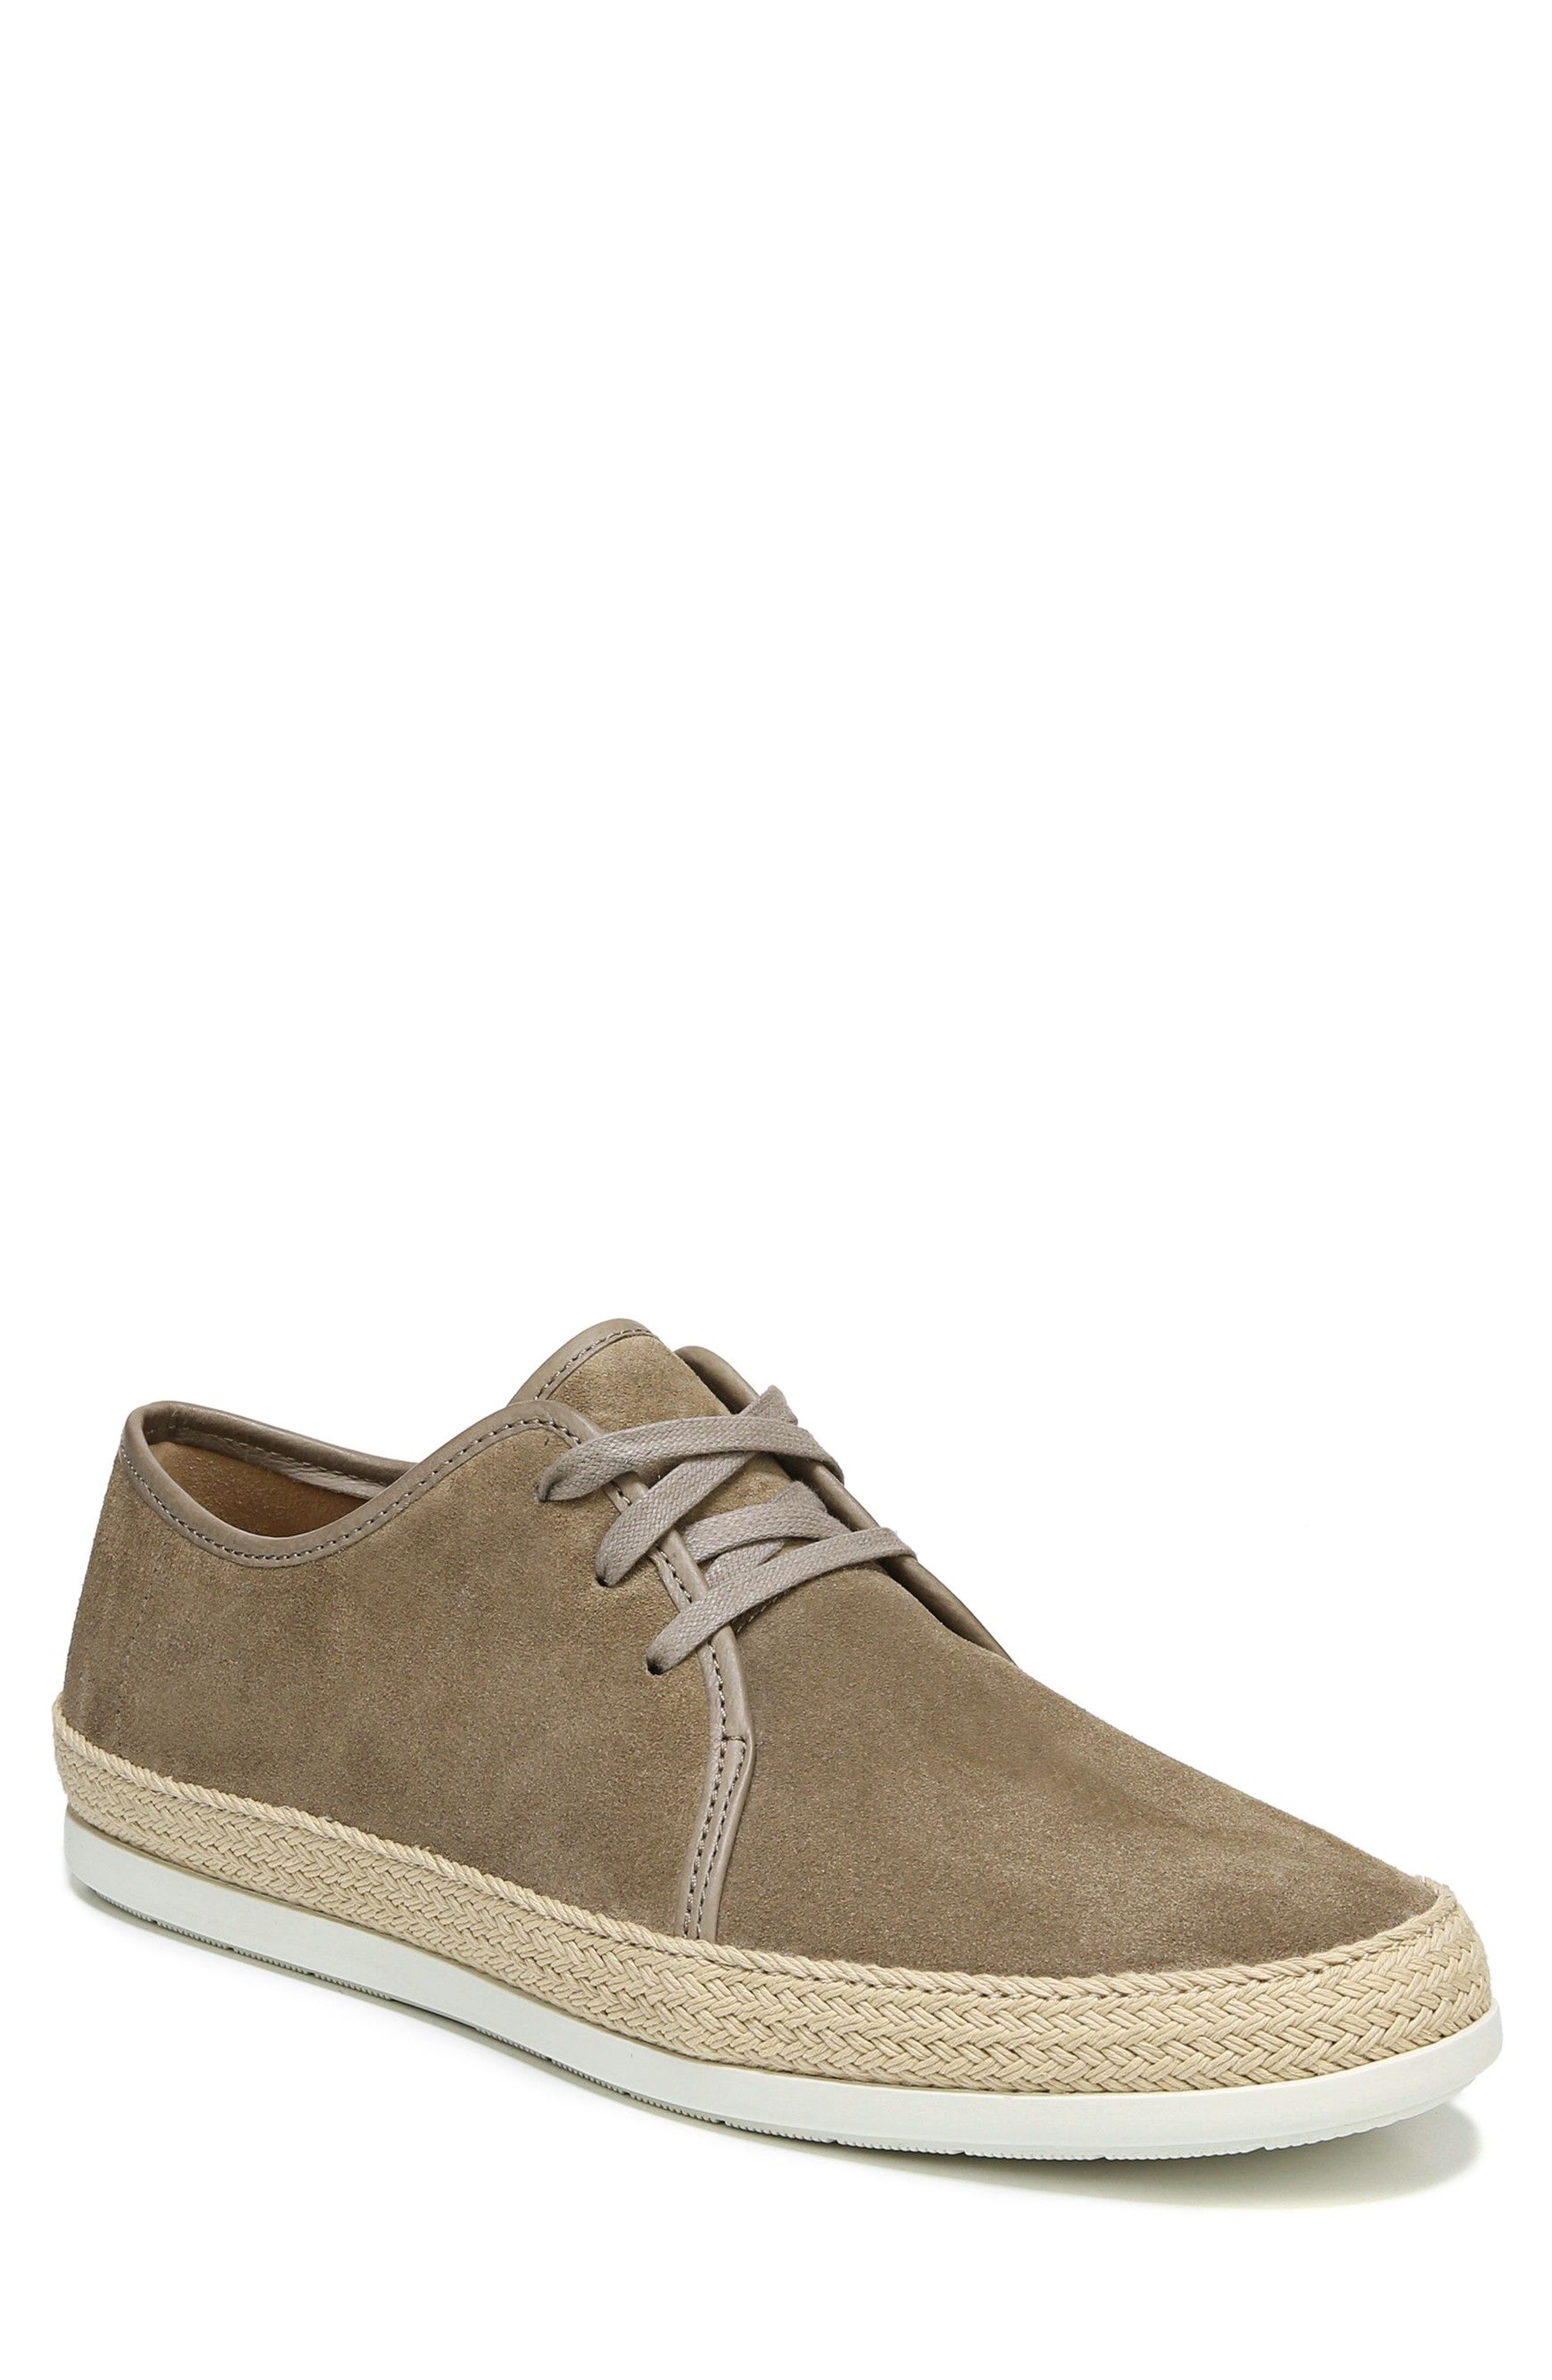 Chandler Espadrille Sneaker,                             Main thumbnail 1, color,                             250